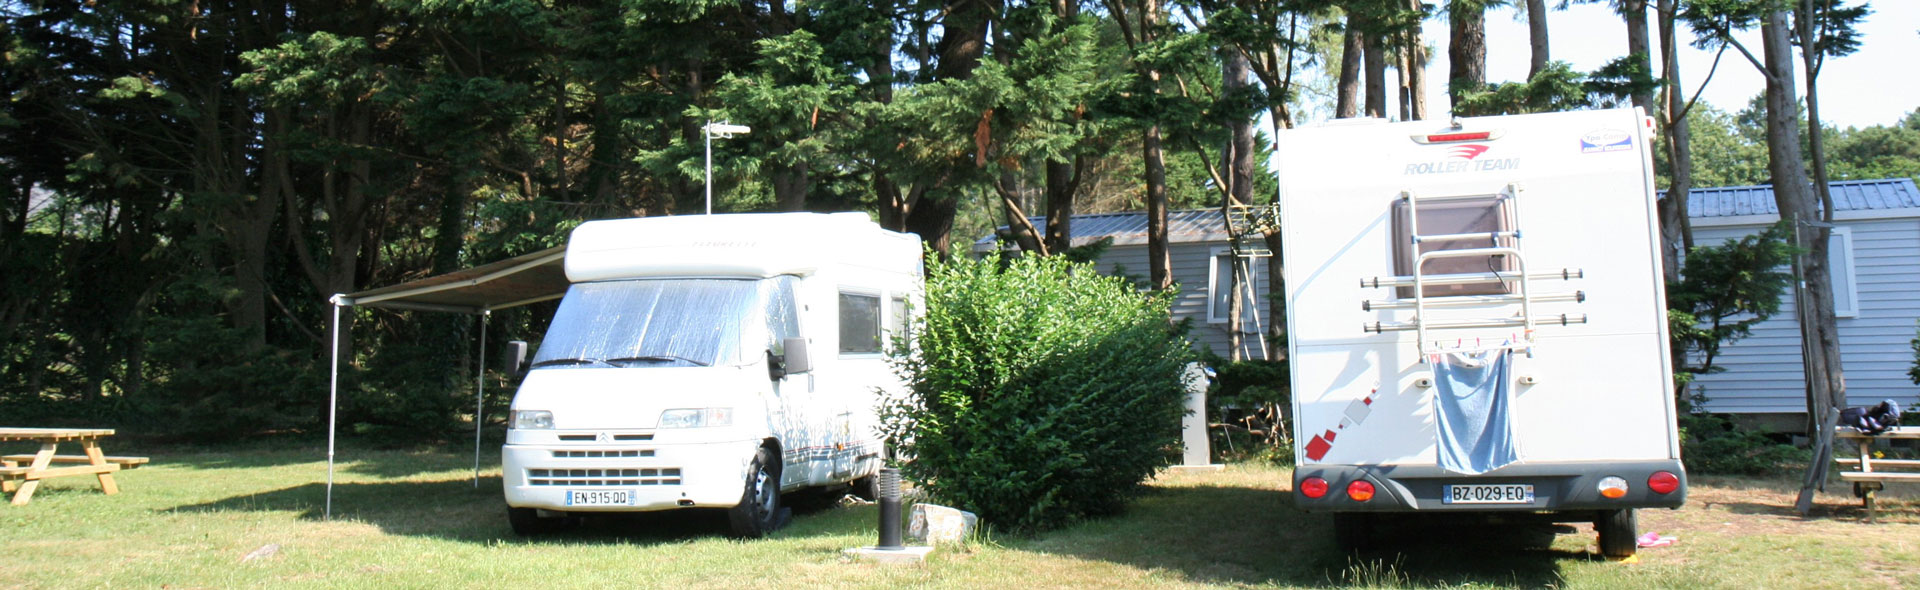 camping caravaning finistère